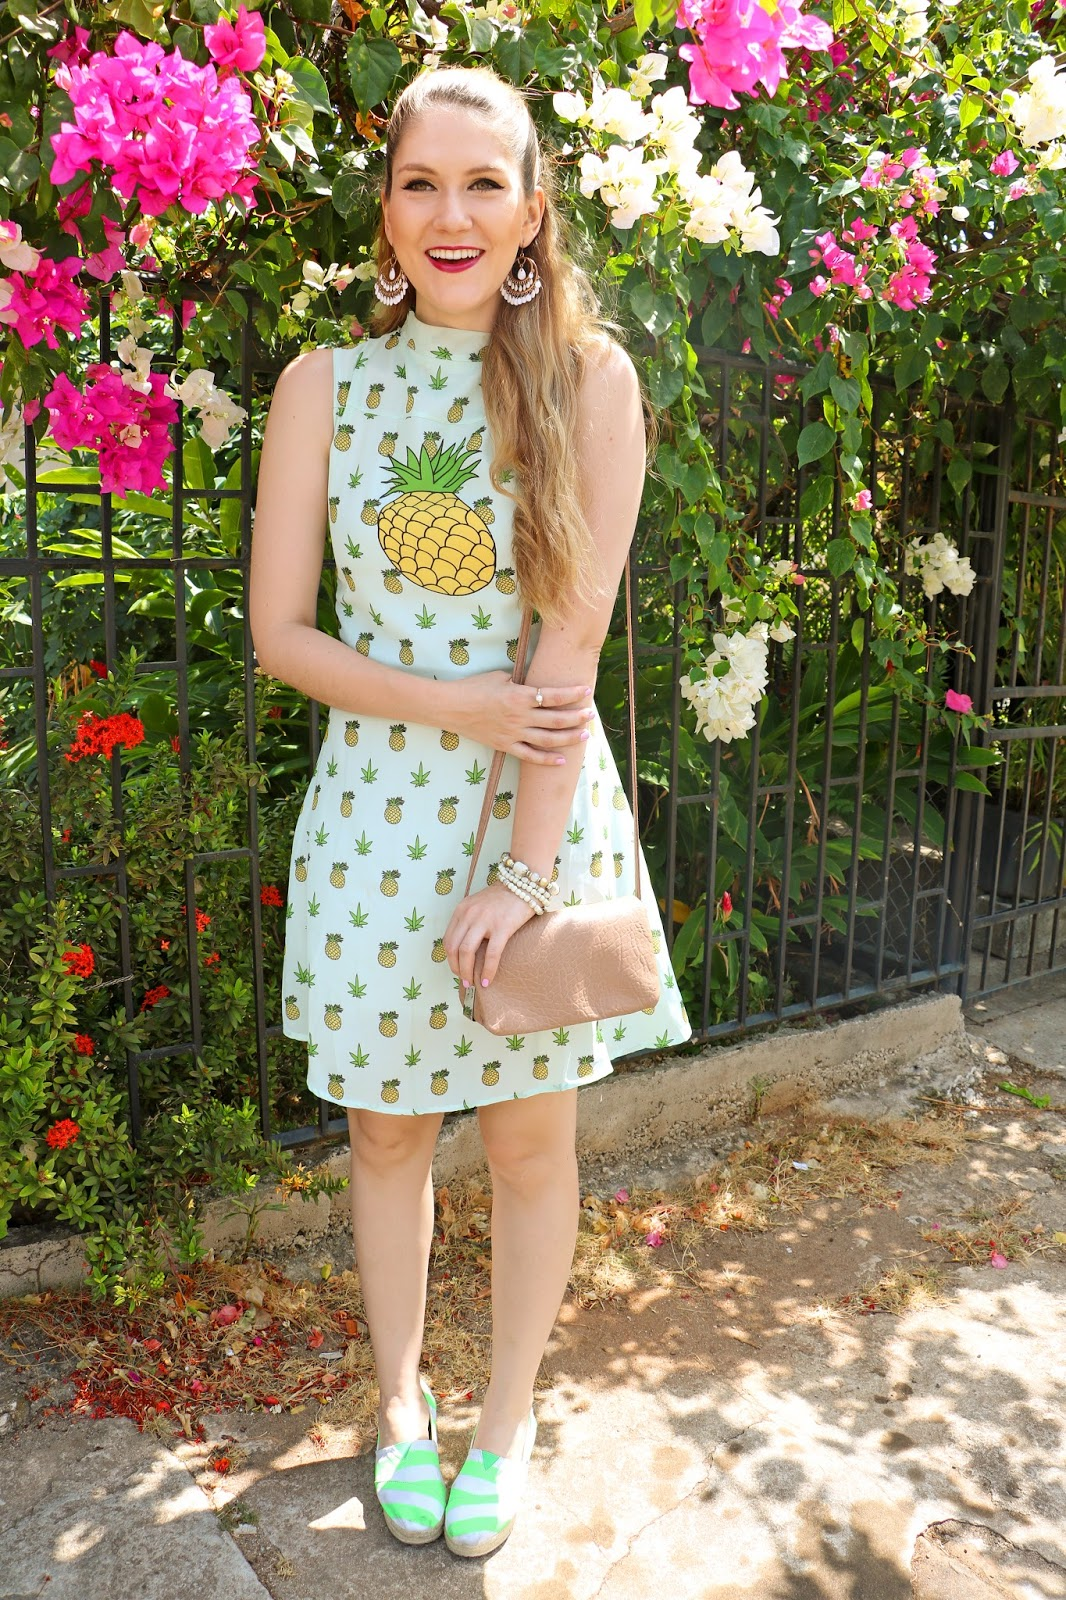 Click through for more fruity outfits!